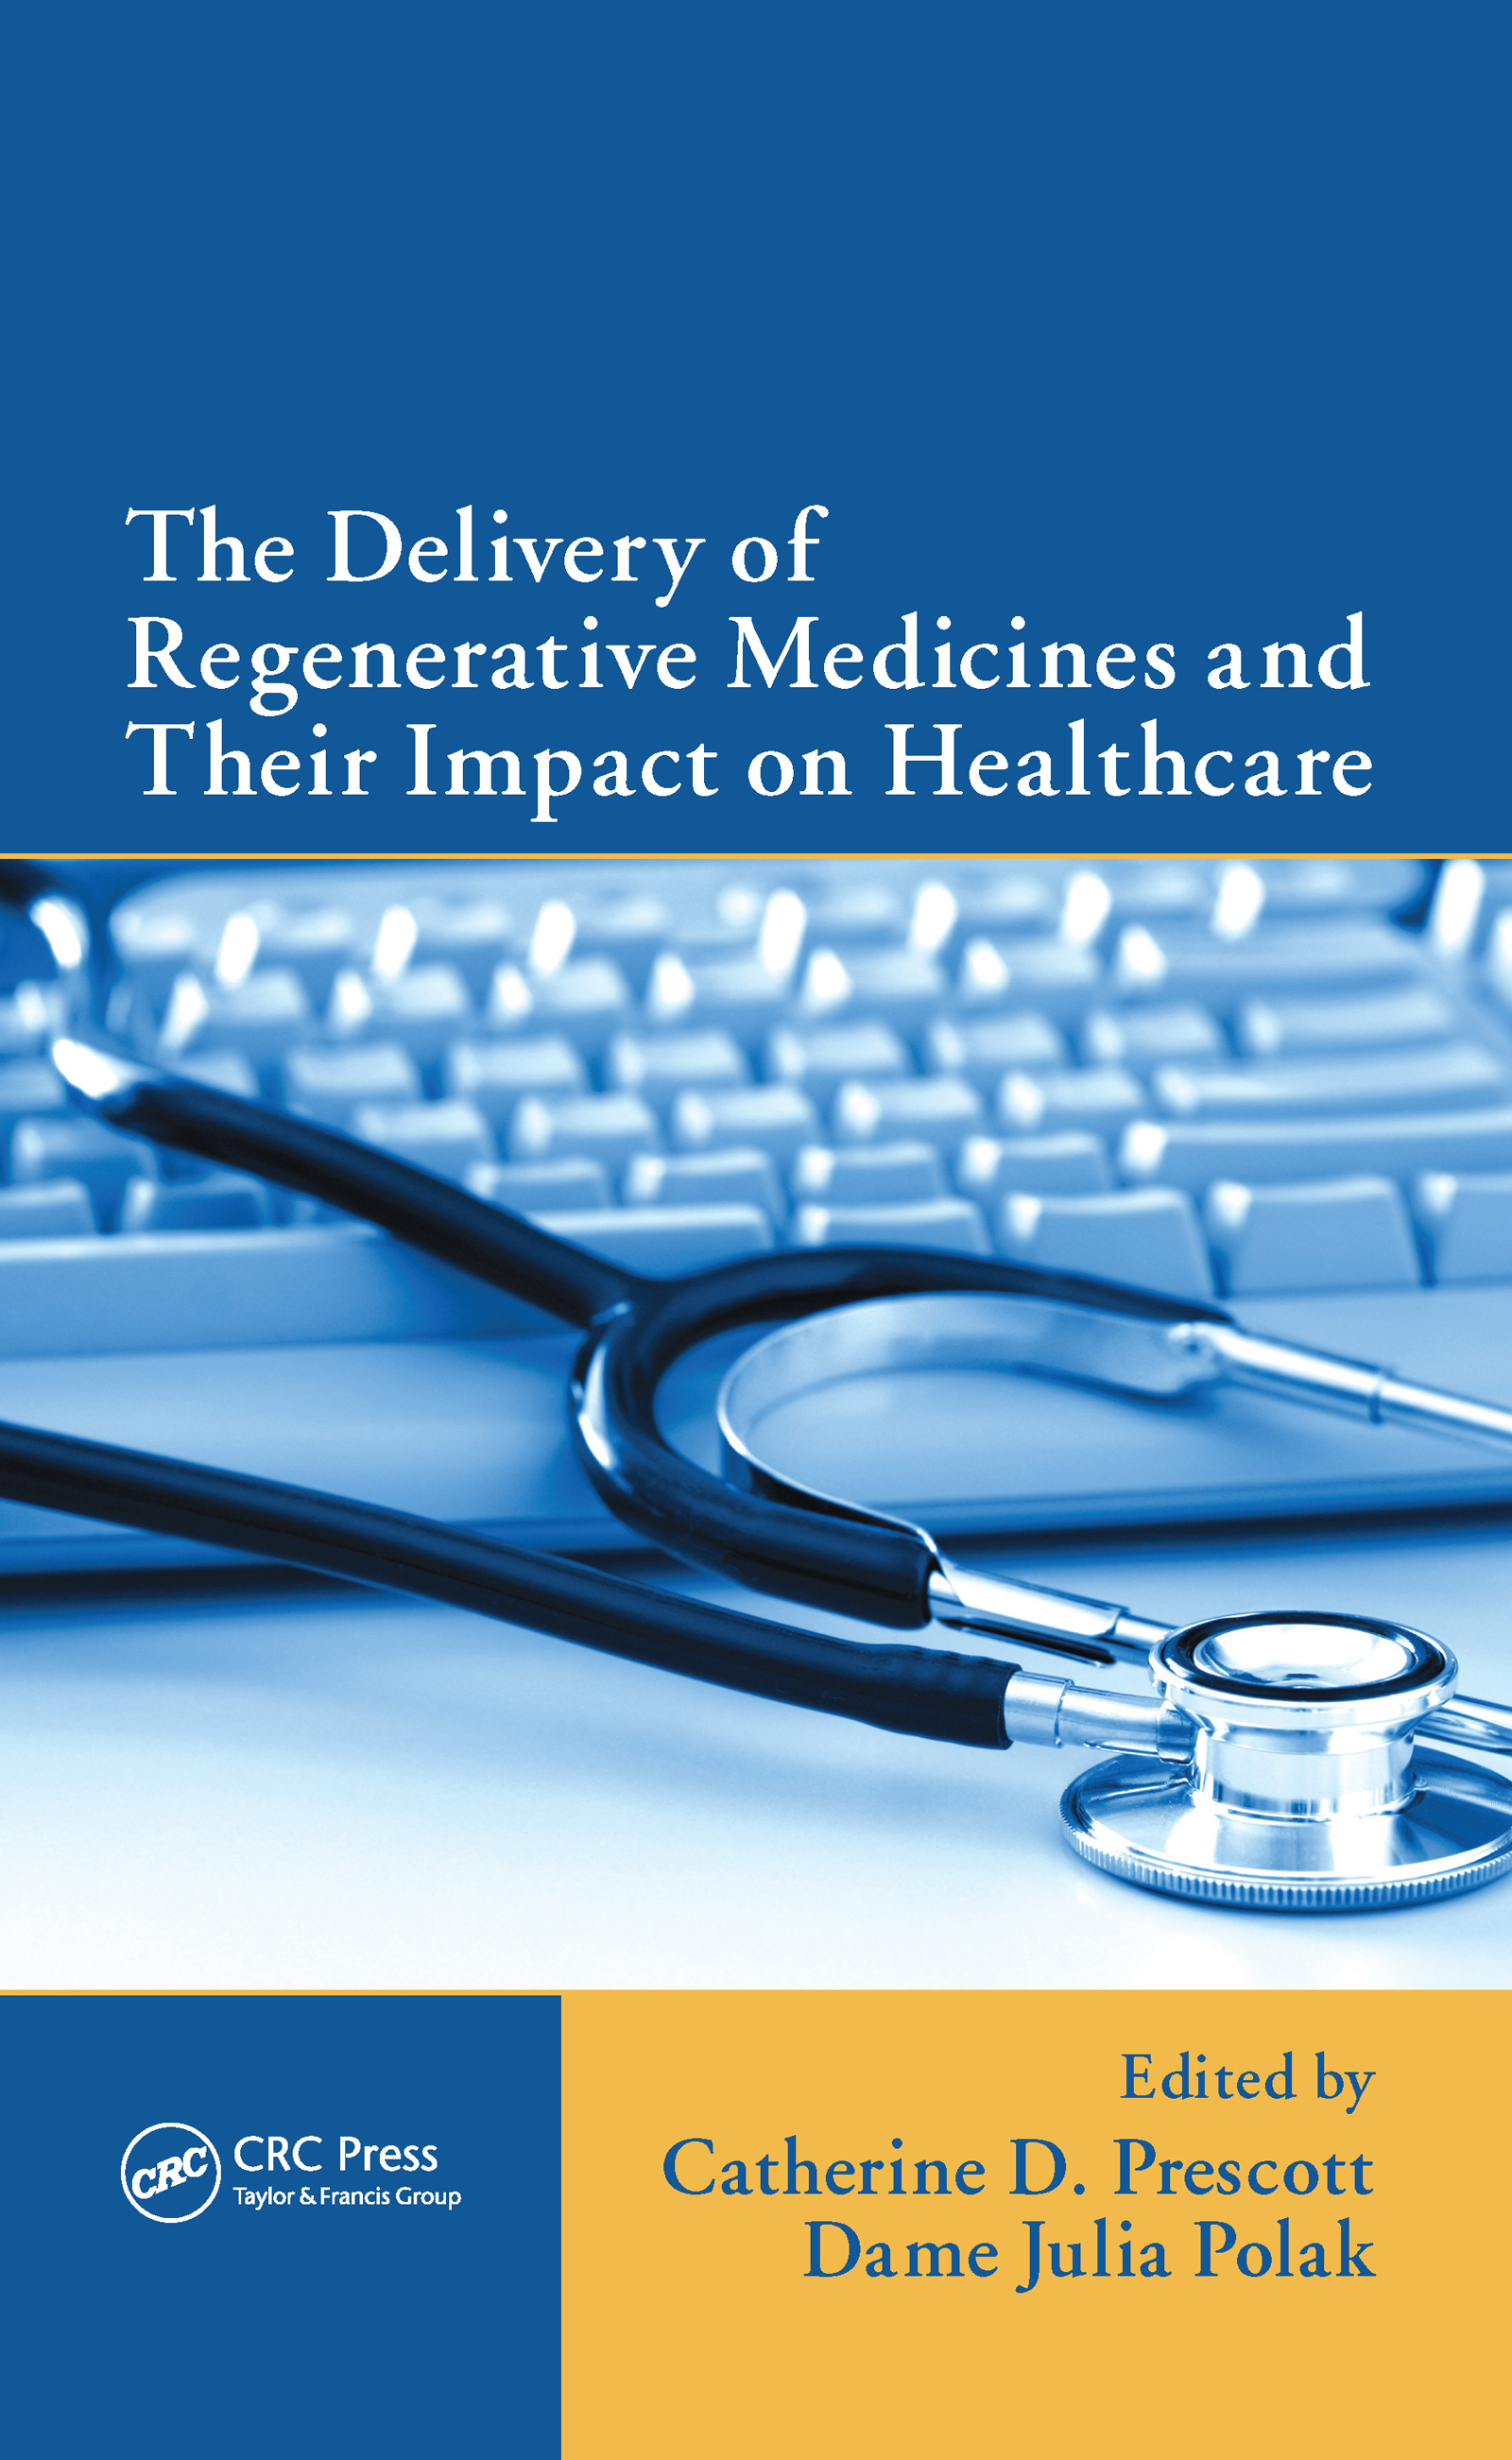 The Delivery of Regenerative Medicines and Their Impact on Healthcare book cover